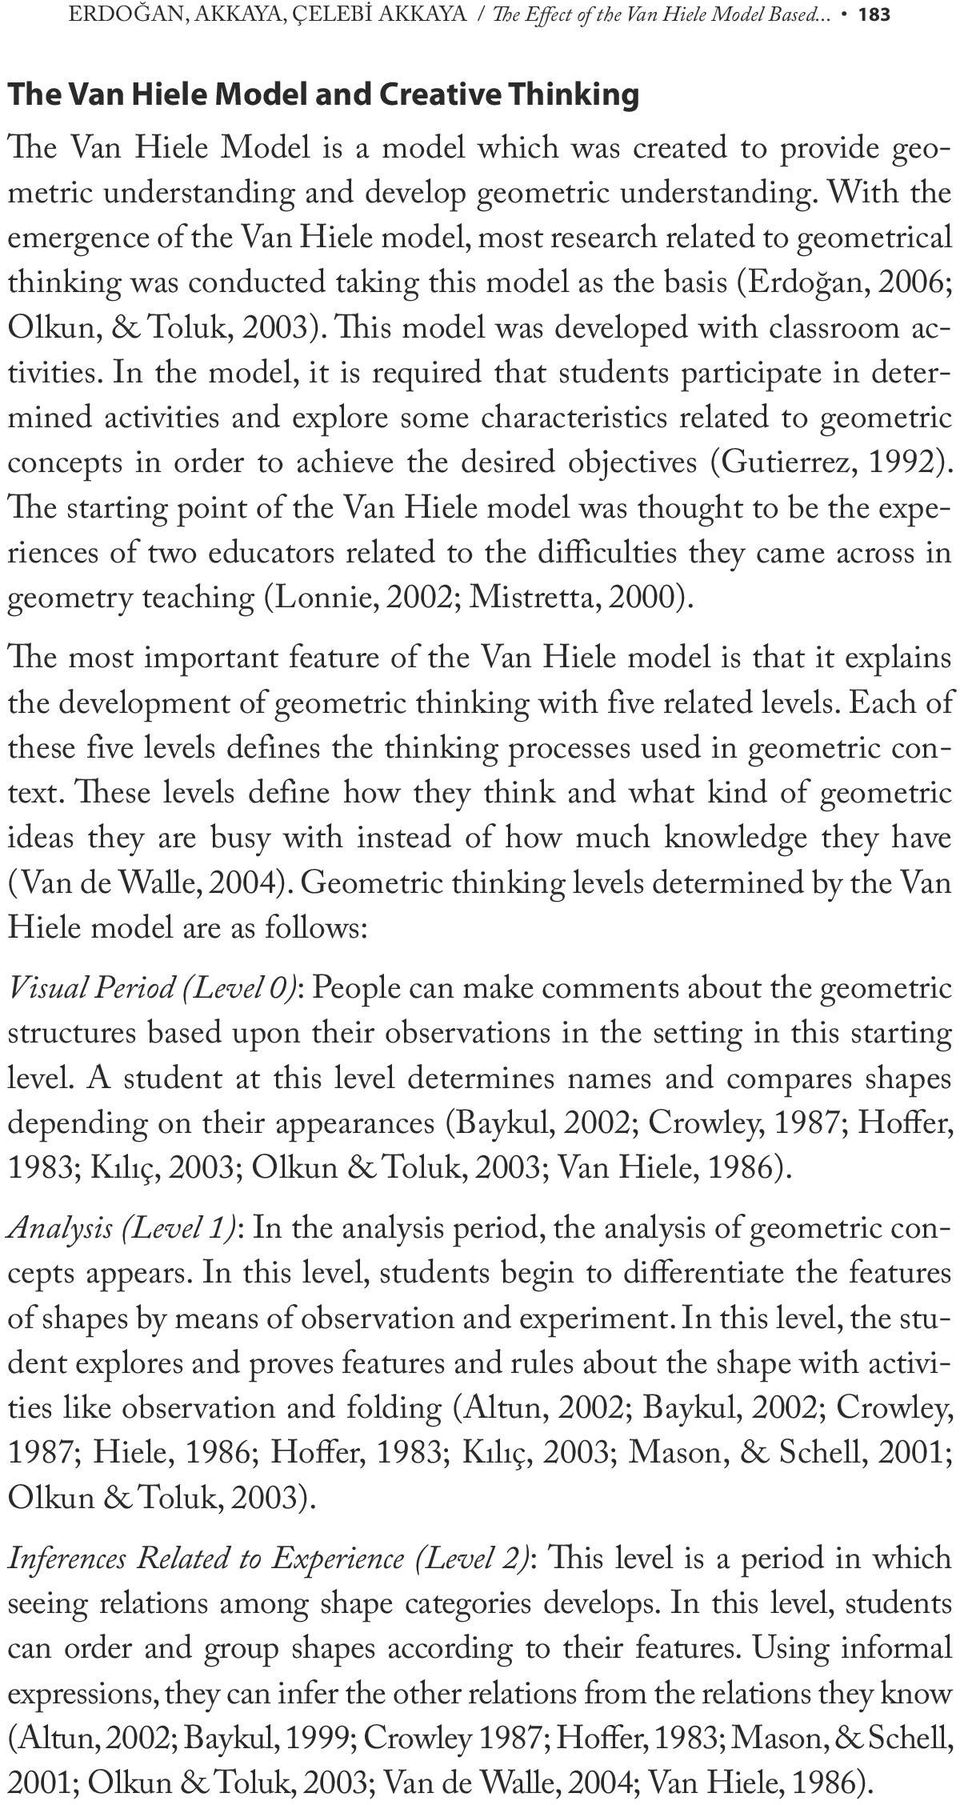 With the emergence of the Van Hiele model, most research related to geometrical thinking was conducted taking this model as the basis (Erdoğan, 2006; Olkun, & Toluk, 2003).